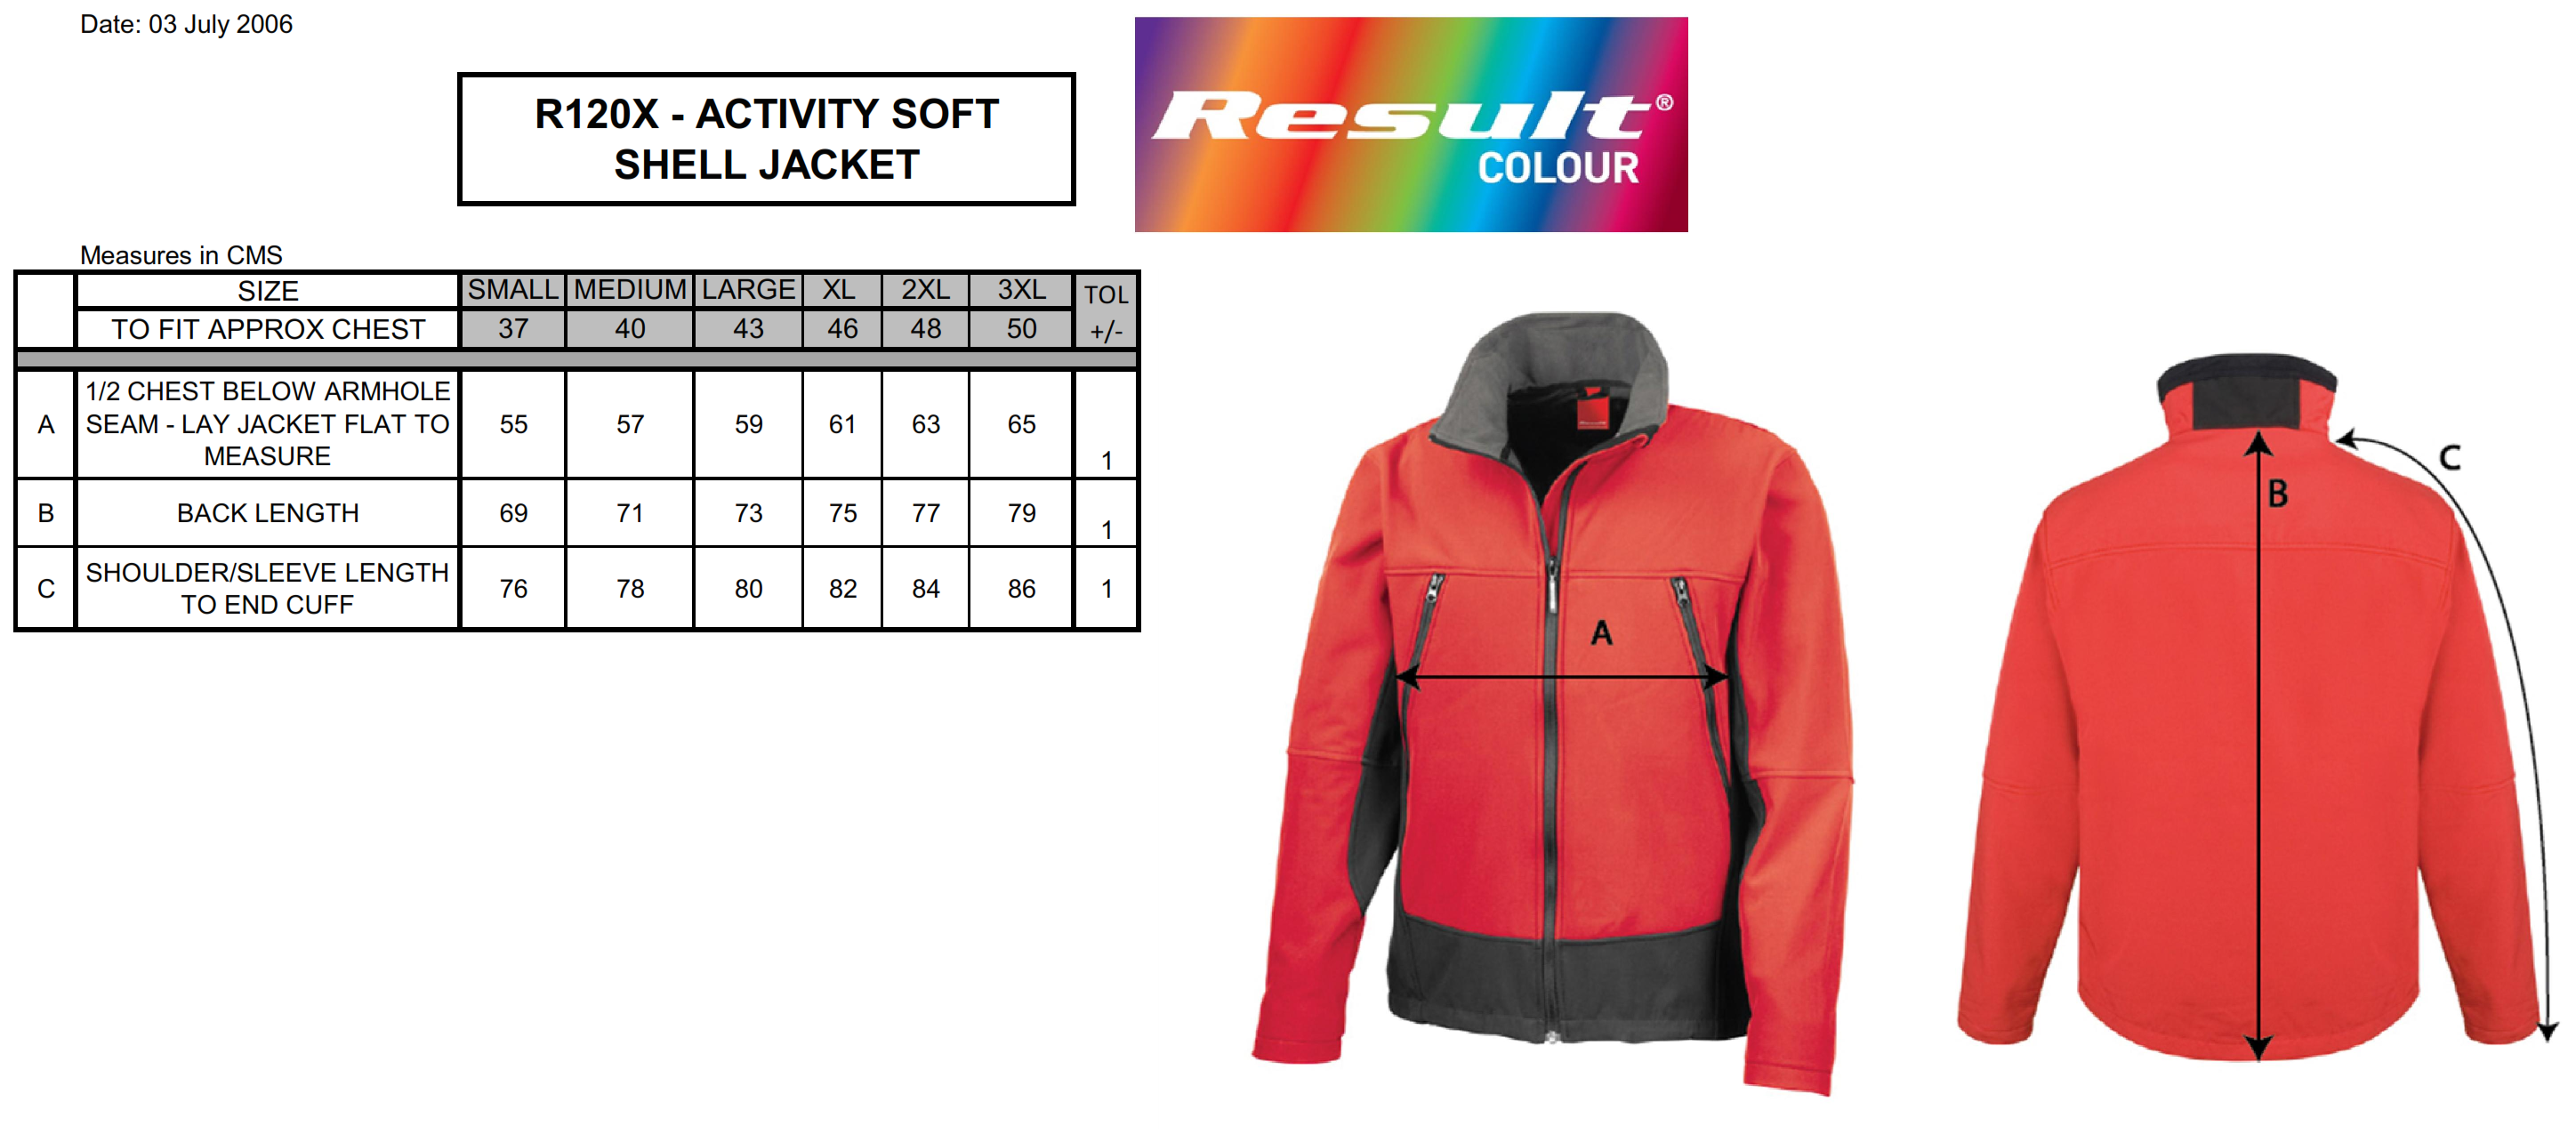 Result: Soft Shell Activity Jacket R120X